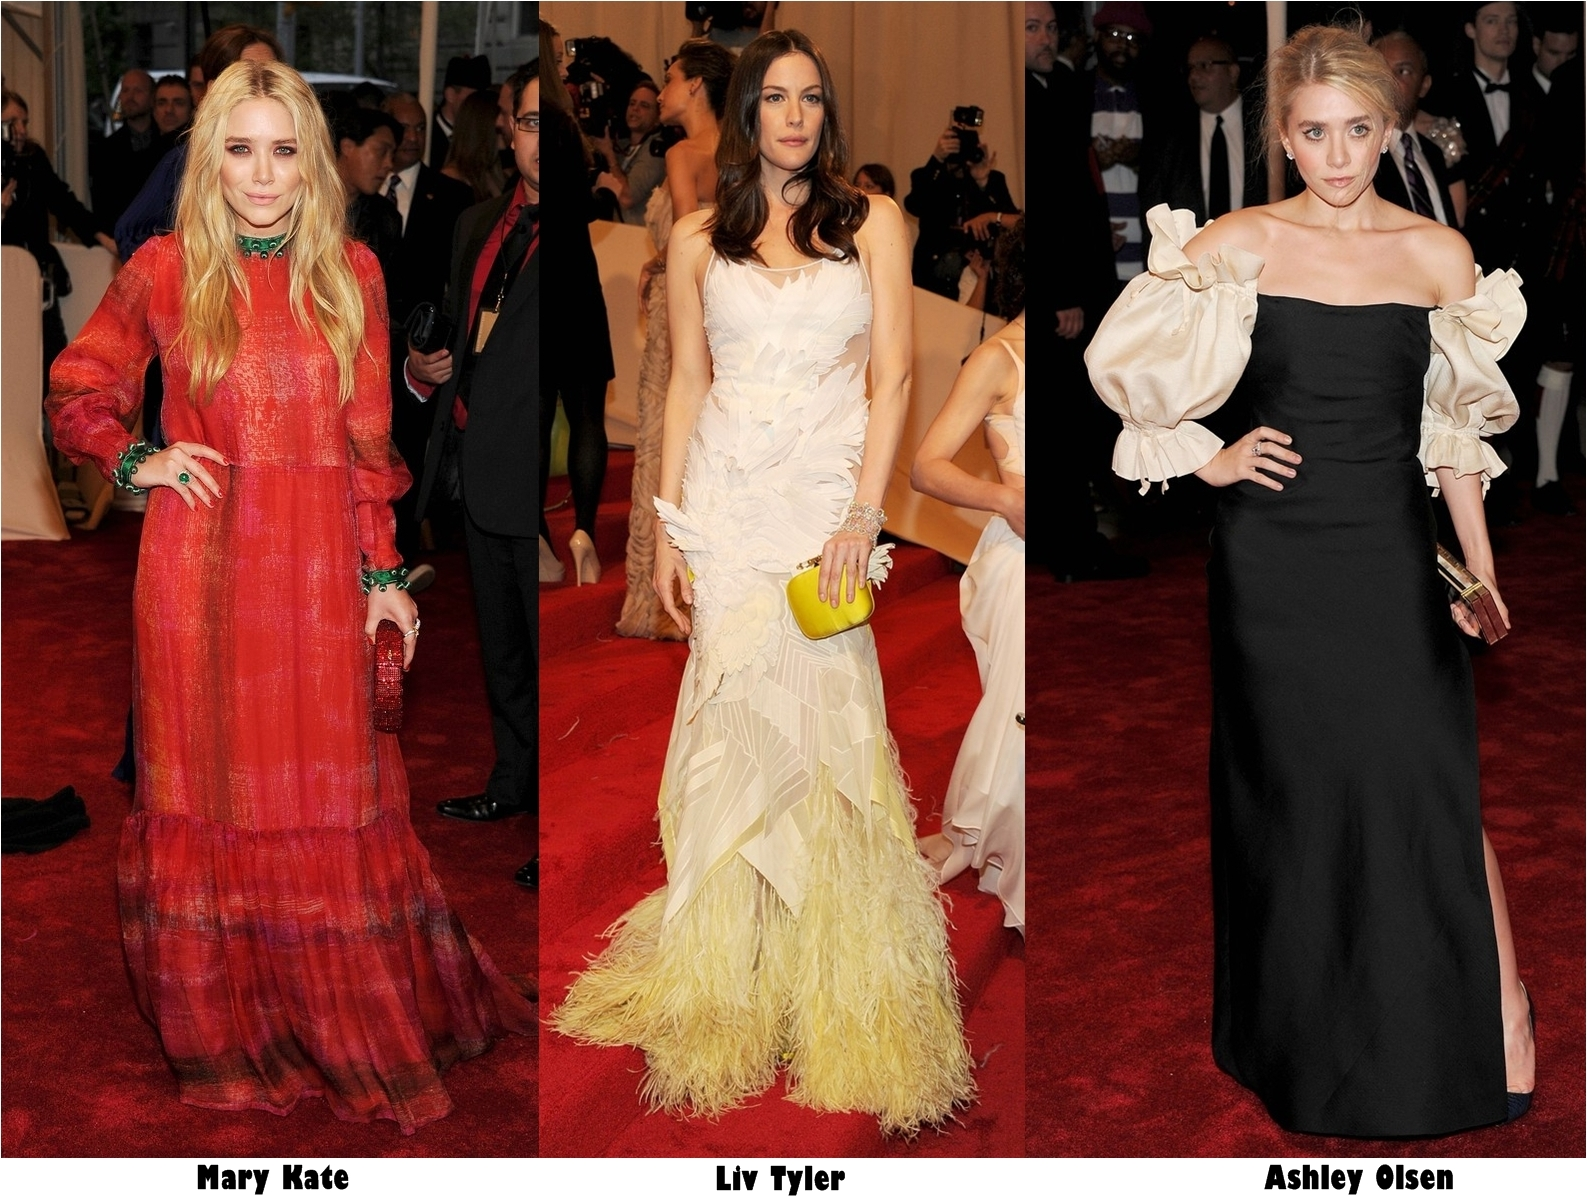 http://4.bp.blogspot.com/-jd9C6sONAIg/TcAEVEW97SI/AAAAAAAACJY/NgqAwZ8t8gI/s1600/mary-kate-ashley-olsen-met-ball-2011-03-horz.jpg